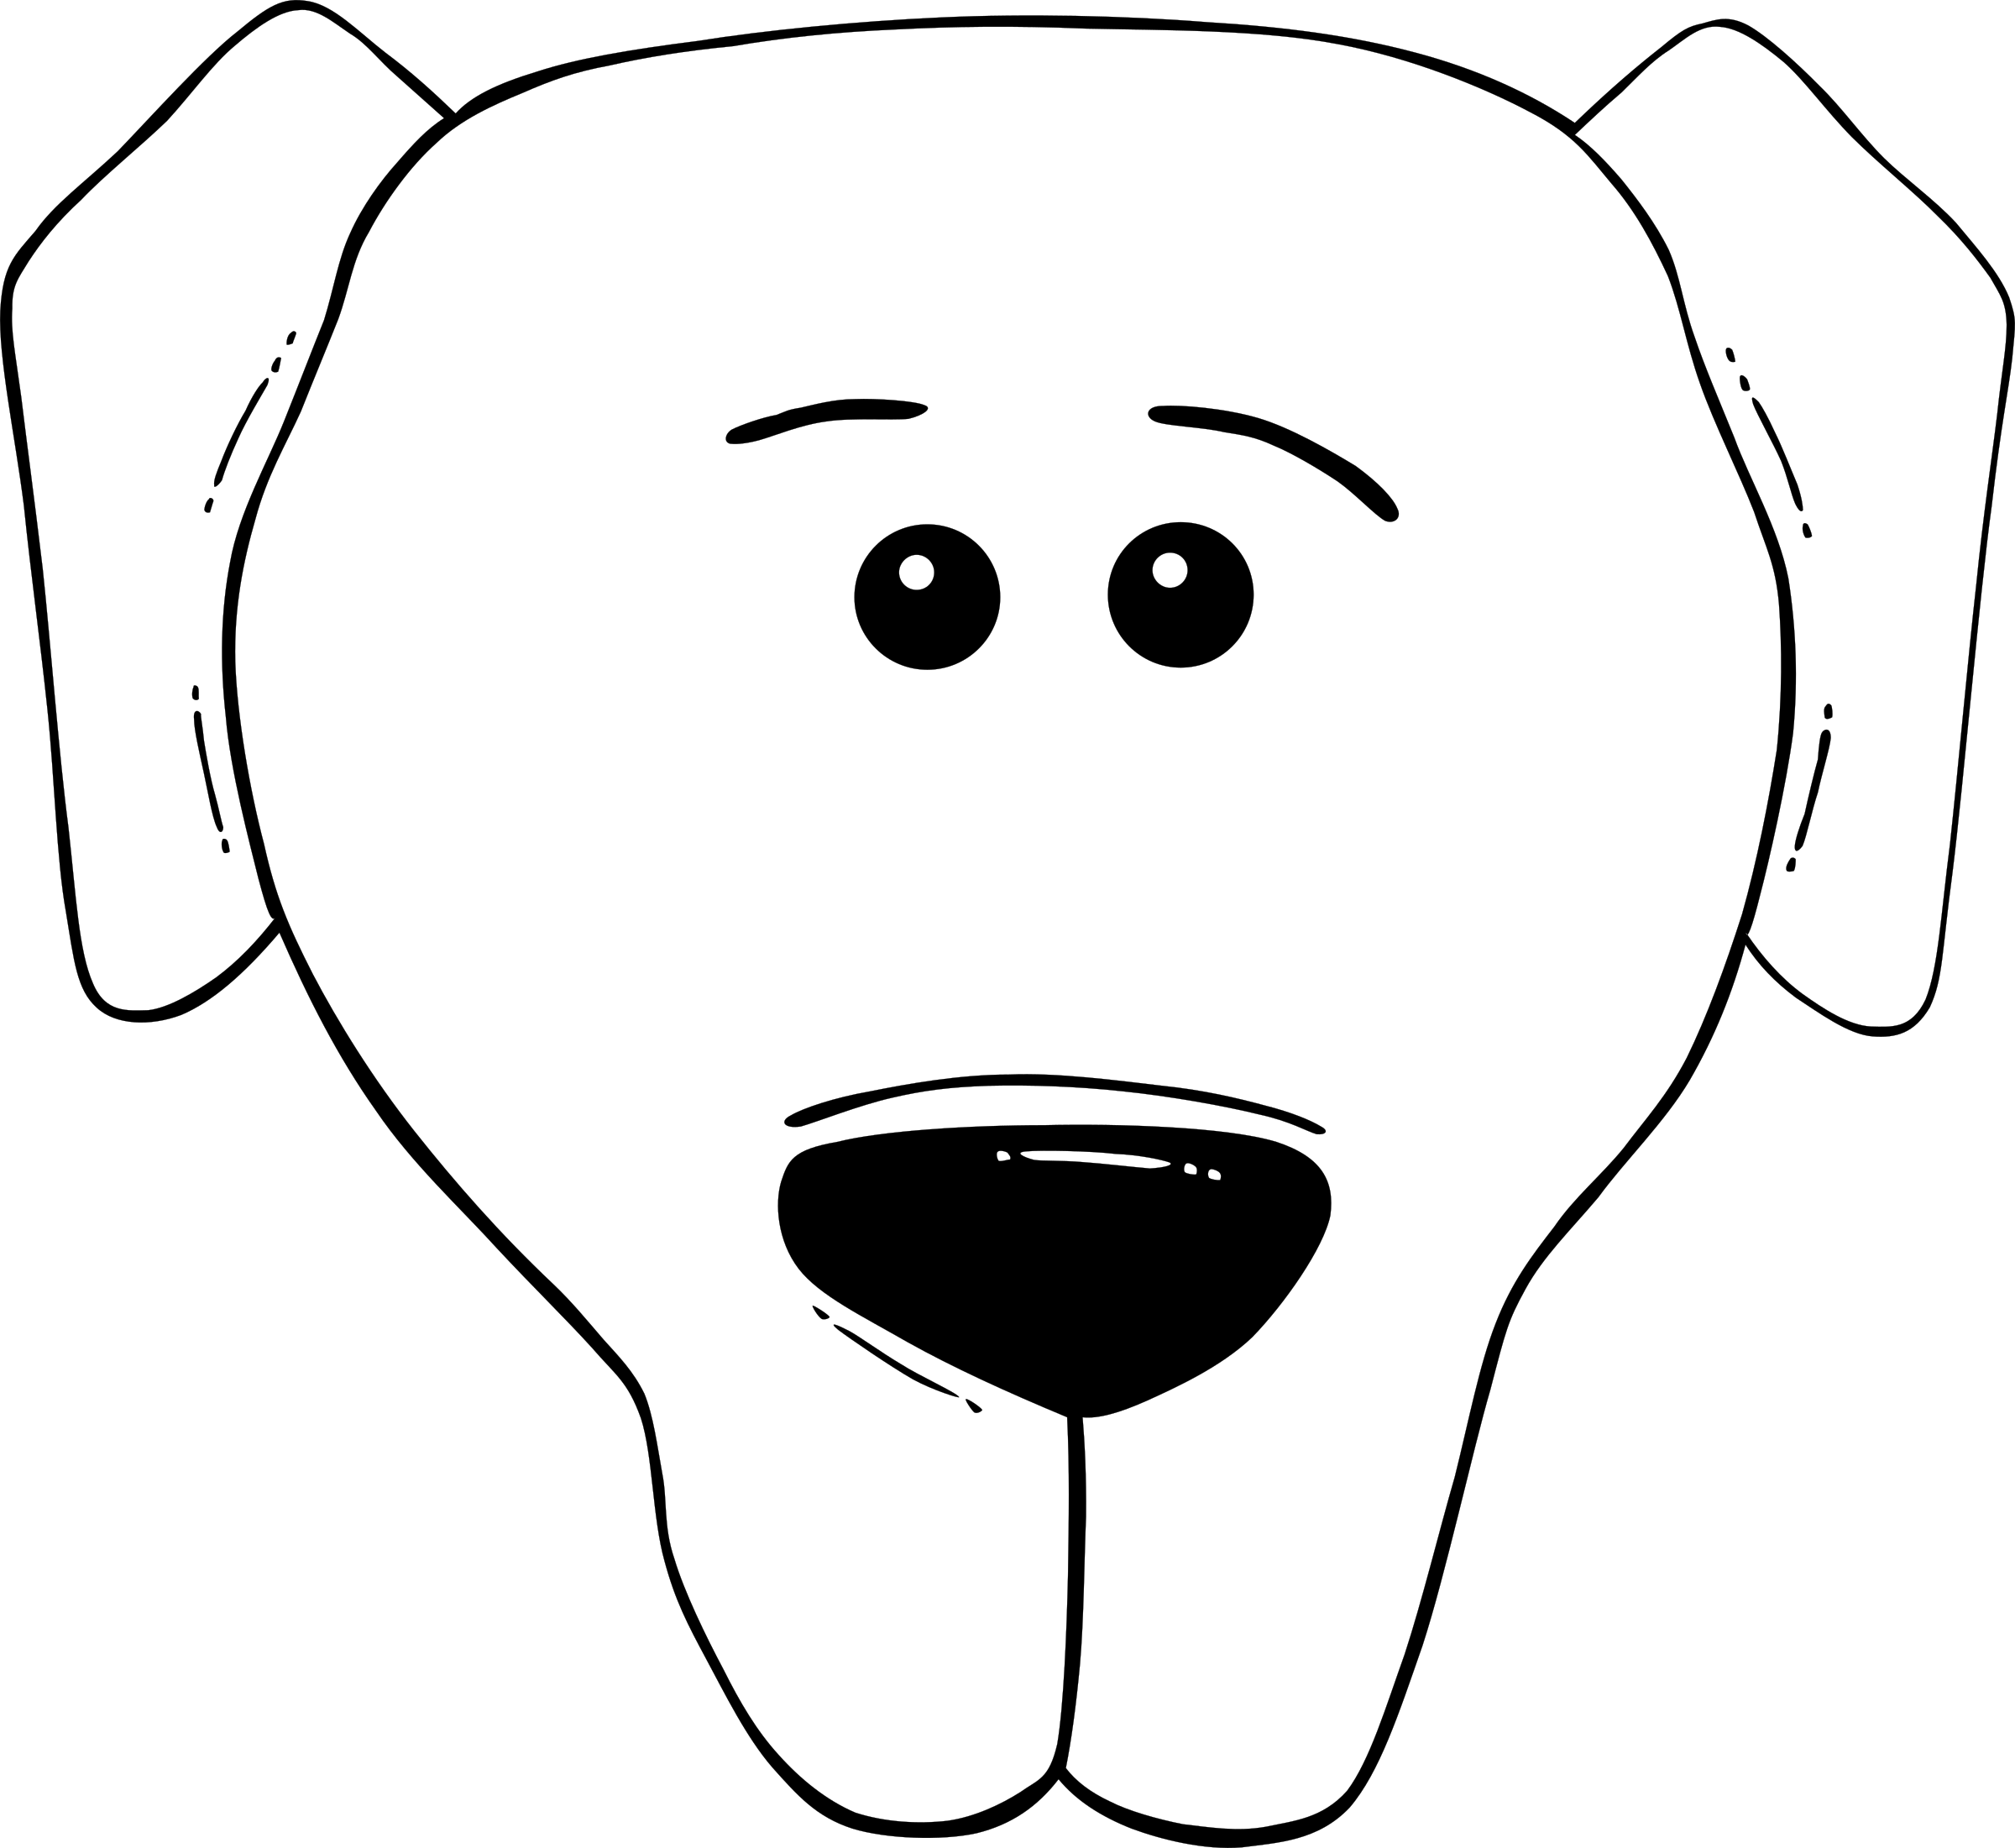 Dog face clipart vector black and white download Clipart - G Dog Face Cartoon - World Label 2 vector black and white download